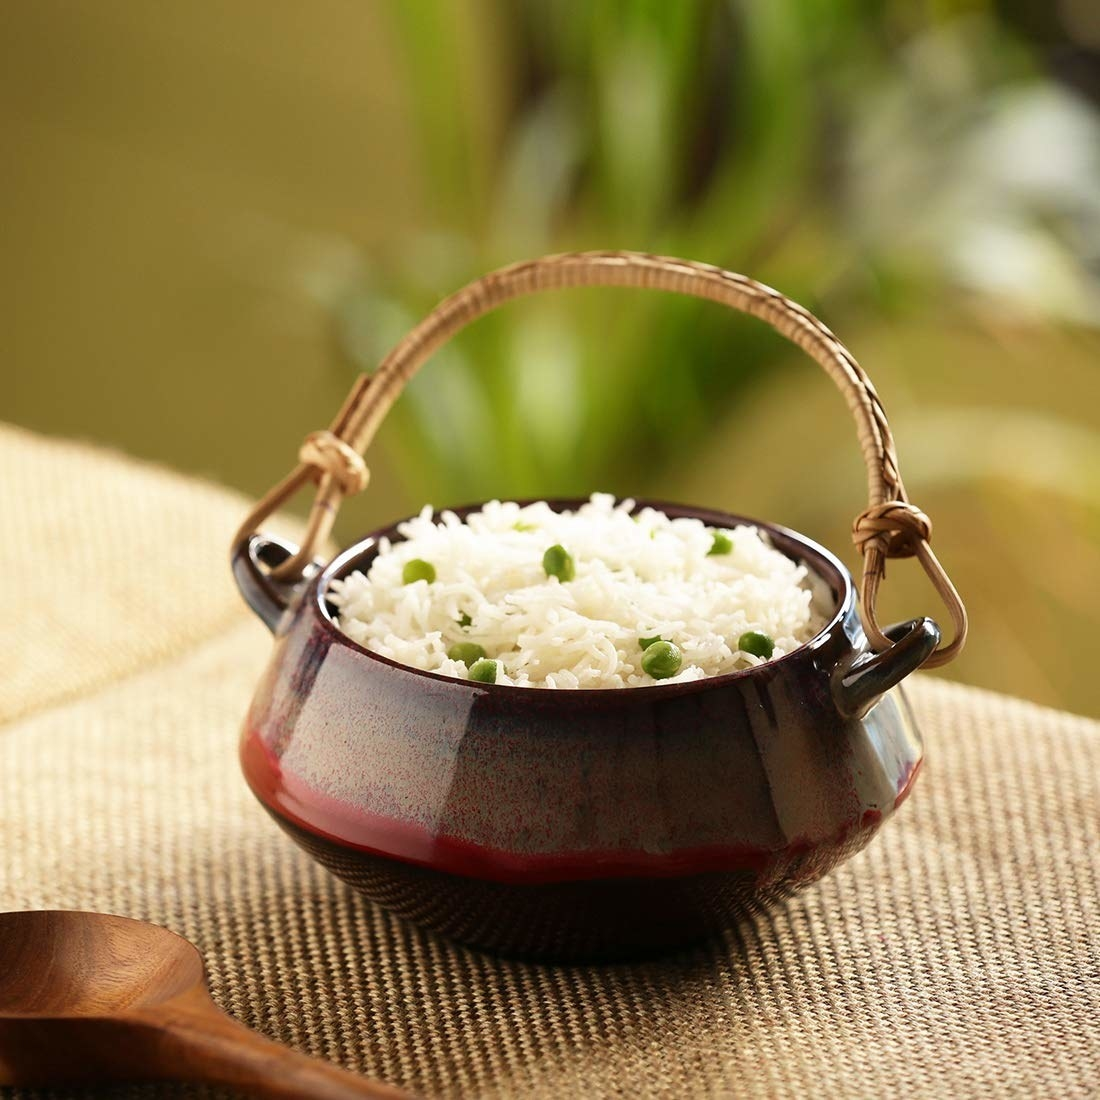 A handi with rice in it